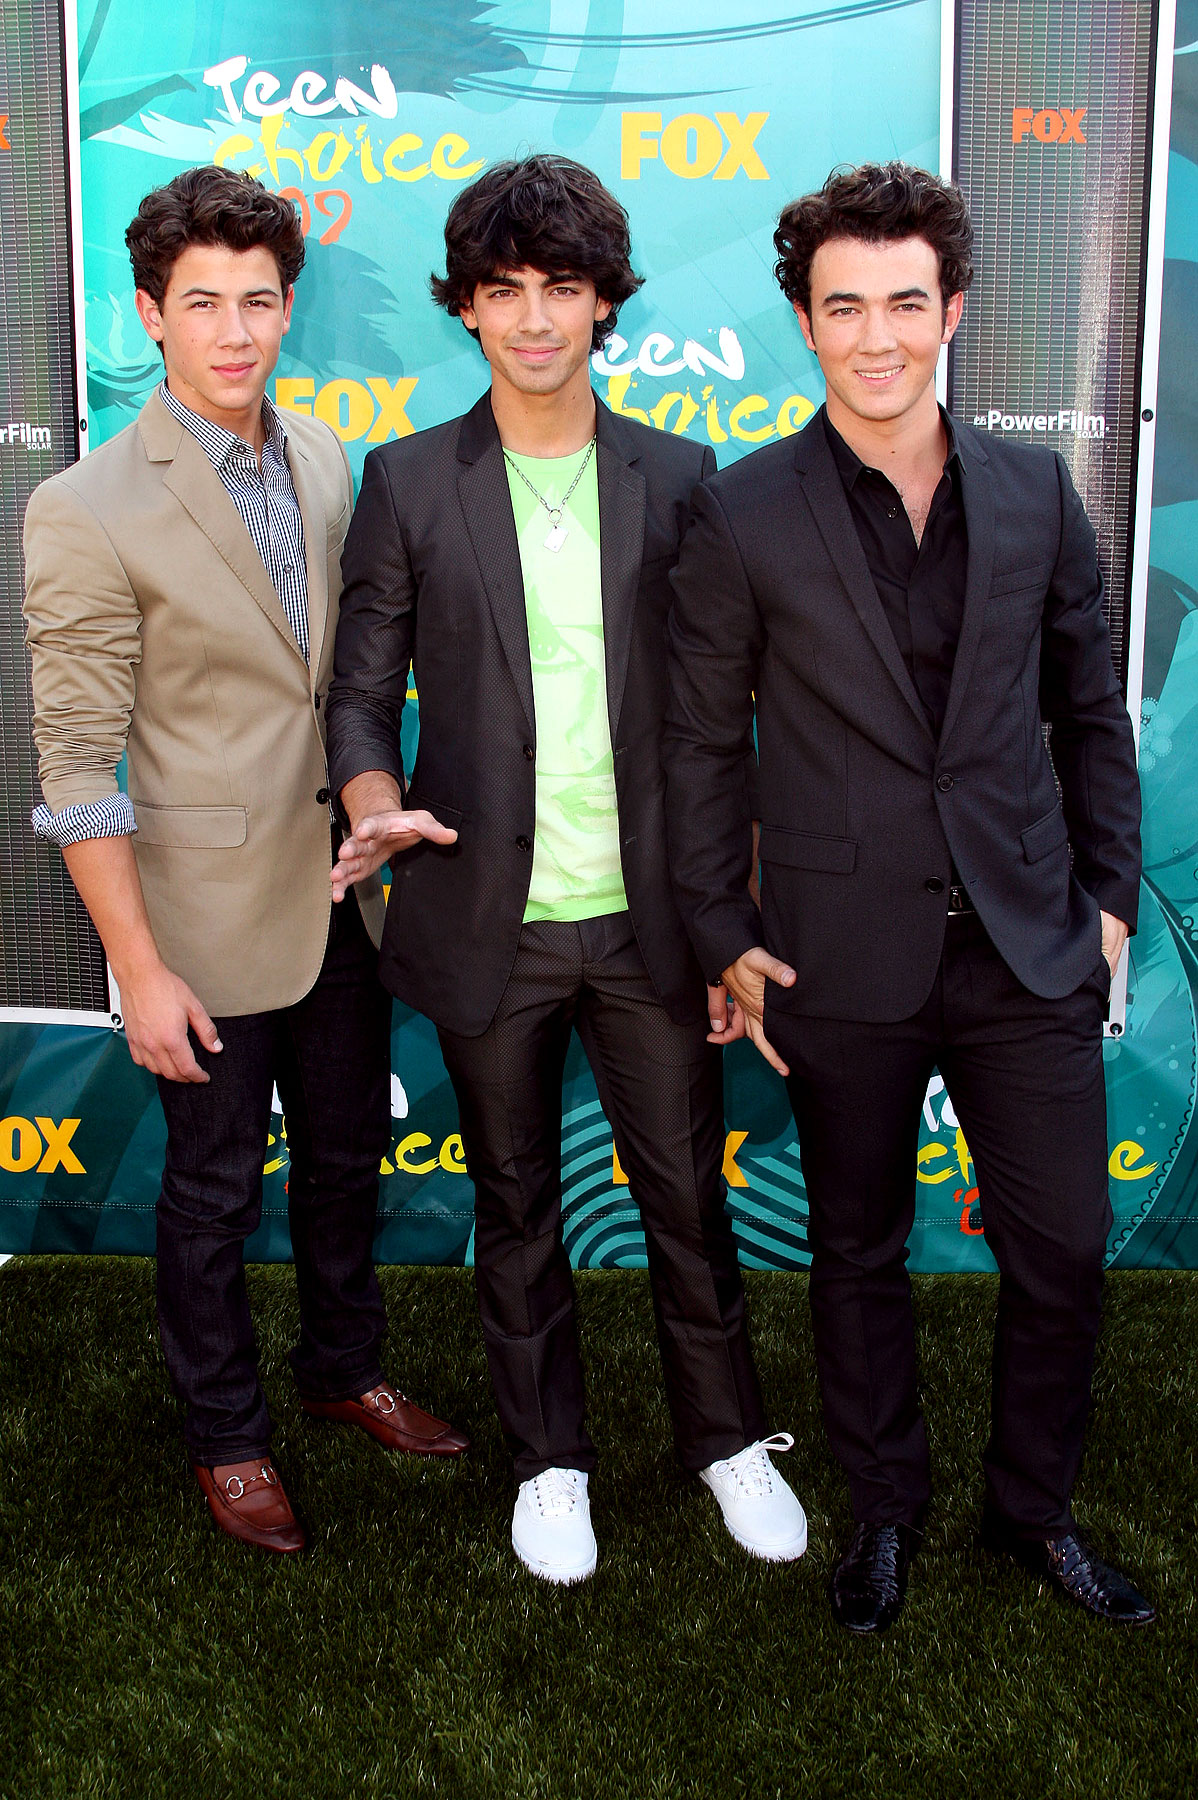 PHOTO GALLERY: The Teen Choice Awards 2009